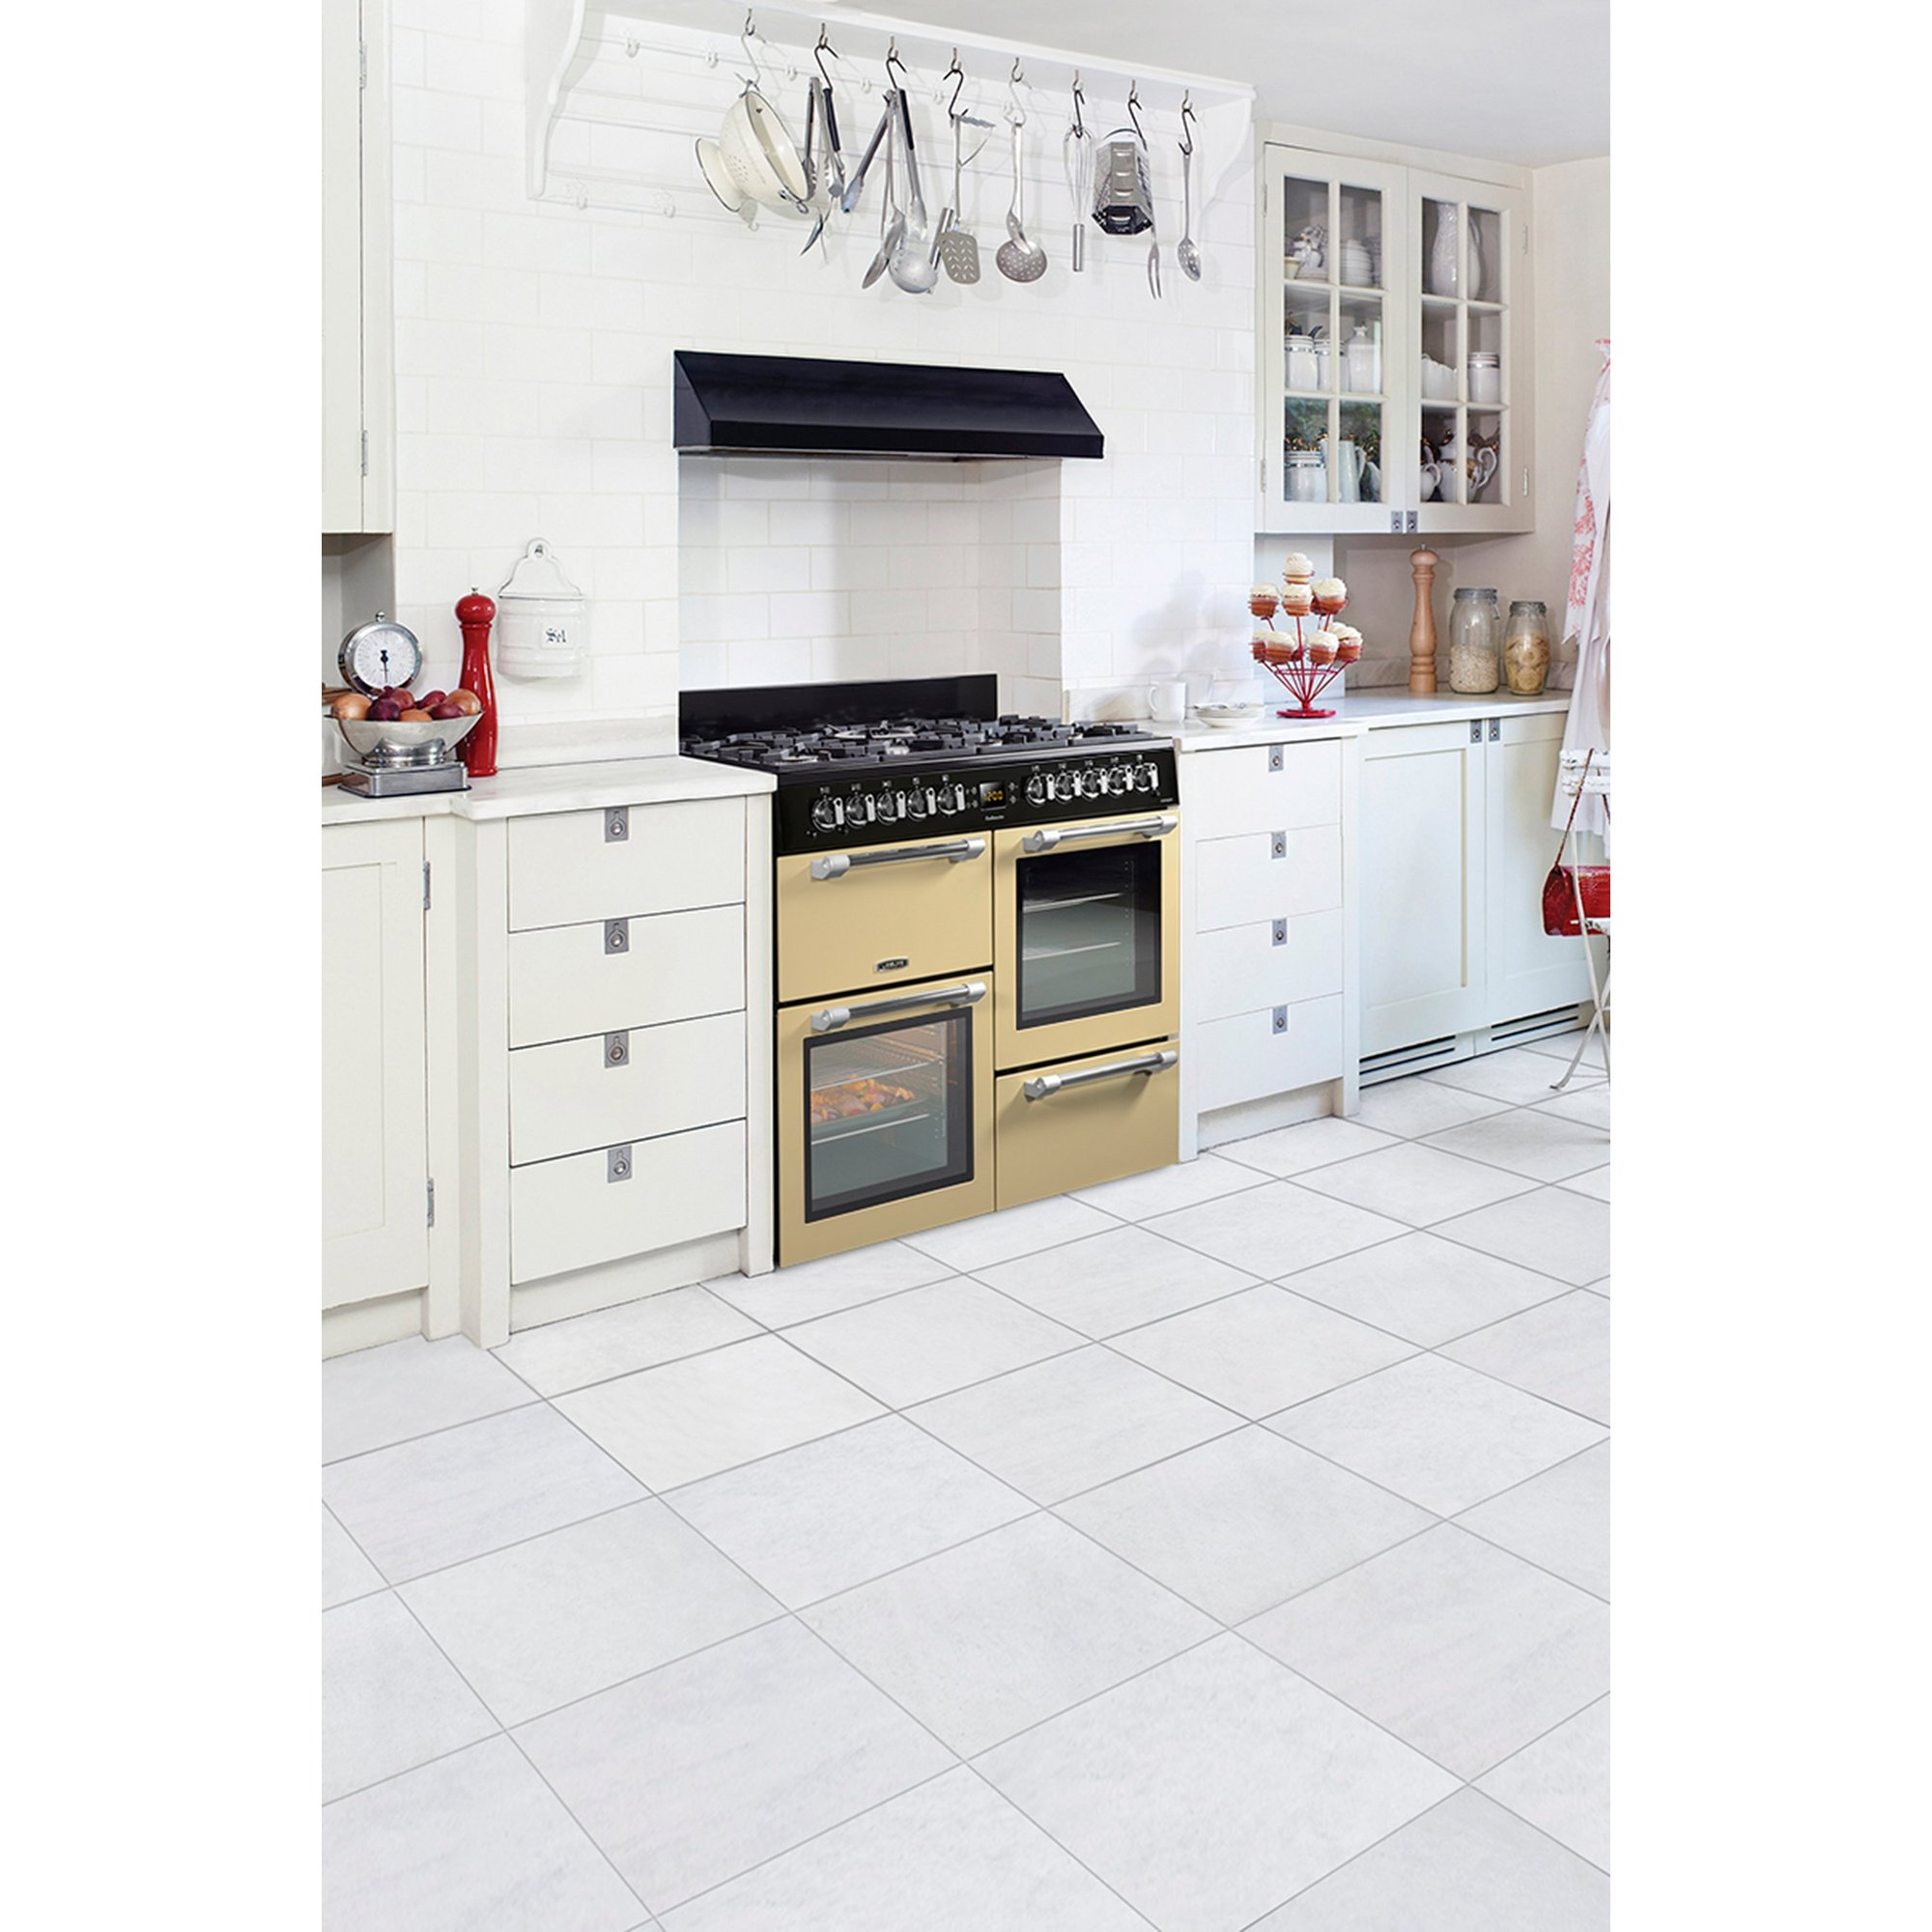 Image of Leisure 100cm Cookmaster Gas Range Cooker